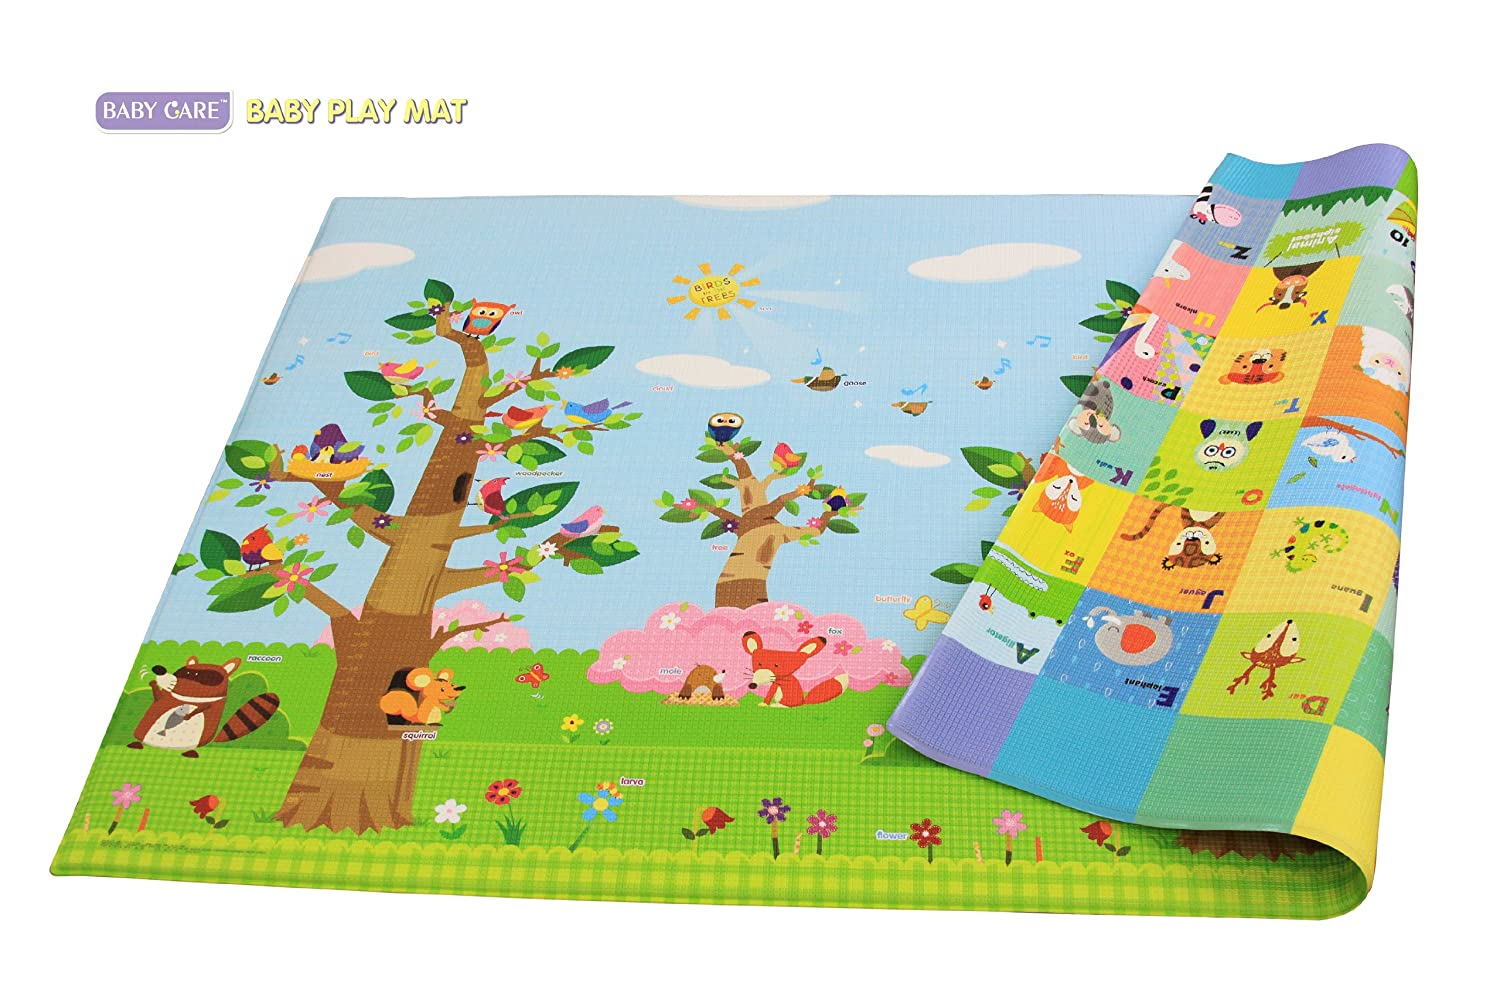 amazoncom baby care play mat  birds on the trees (large) home  - amazoncom baby care play mat  birds on the trees (large) home  kitchen